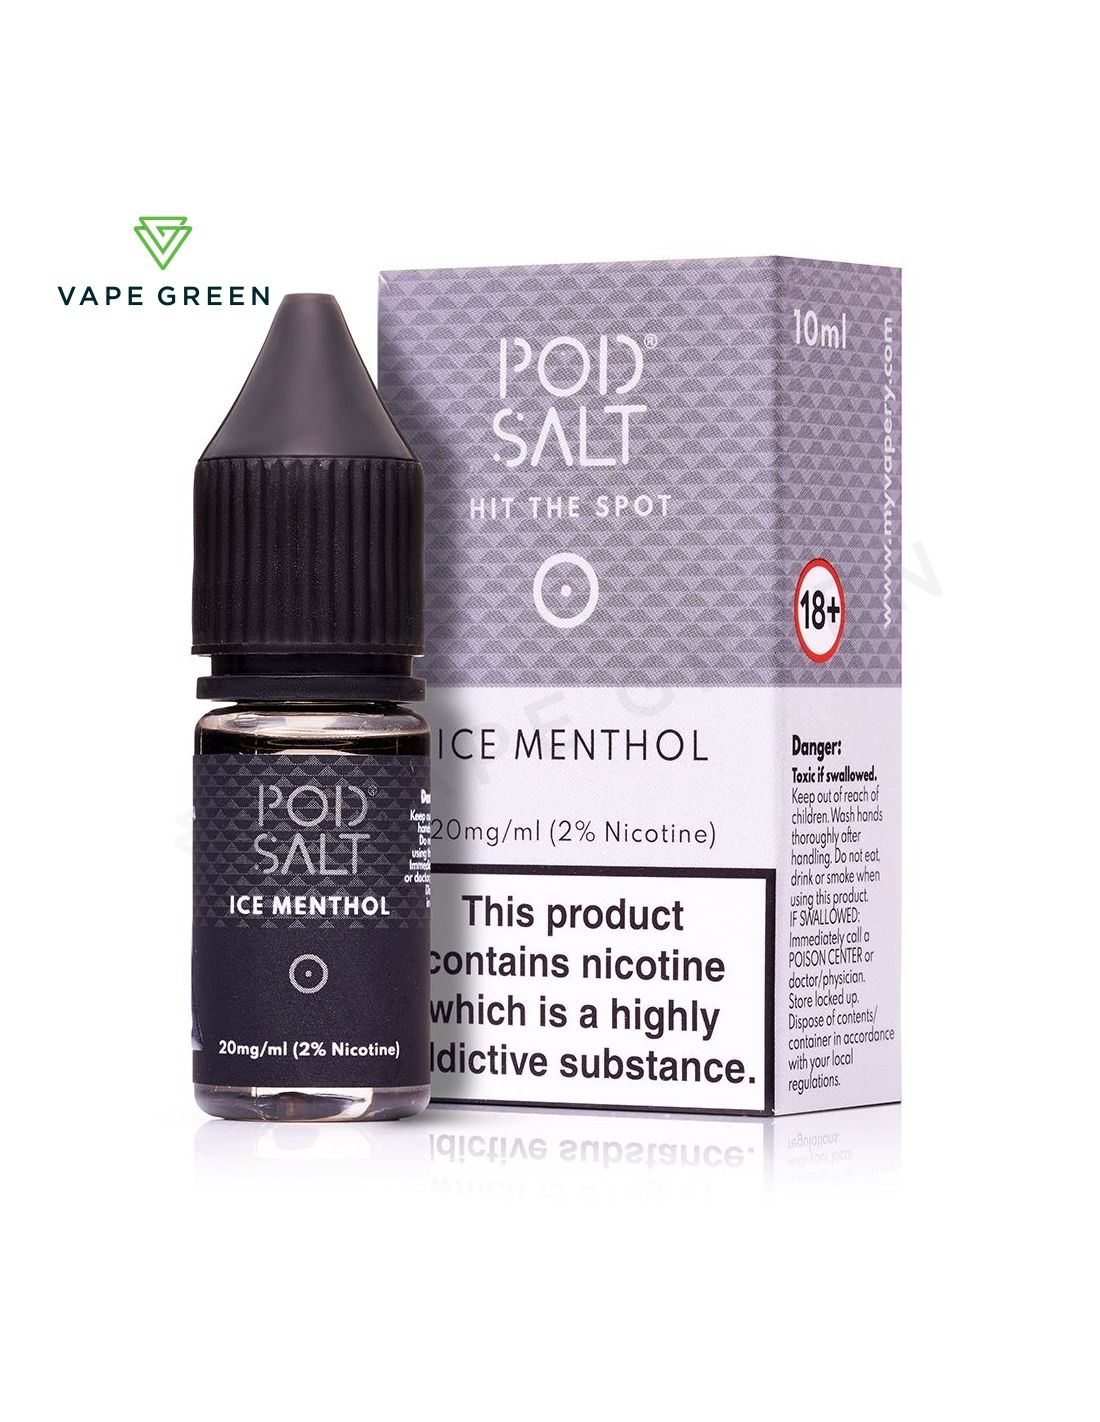 Menthol Cigarette Ban - What you need to know.